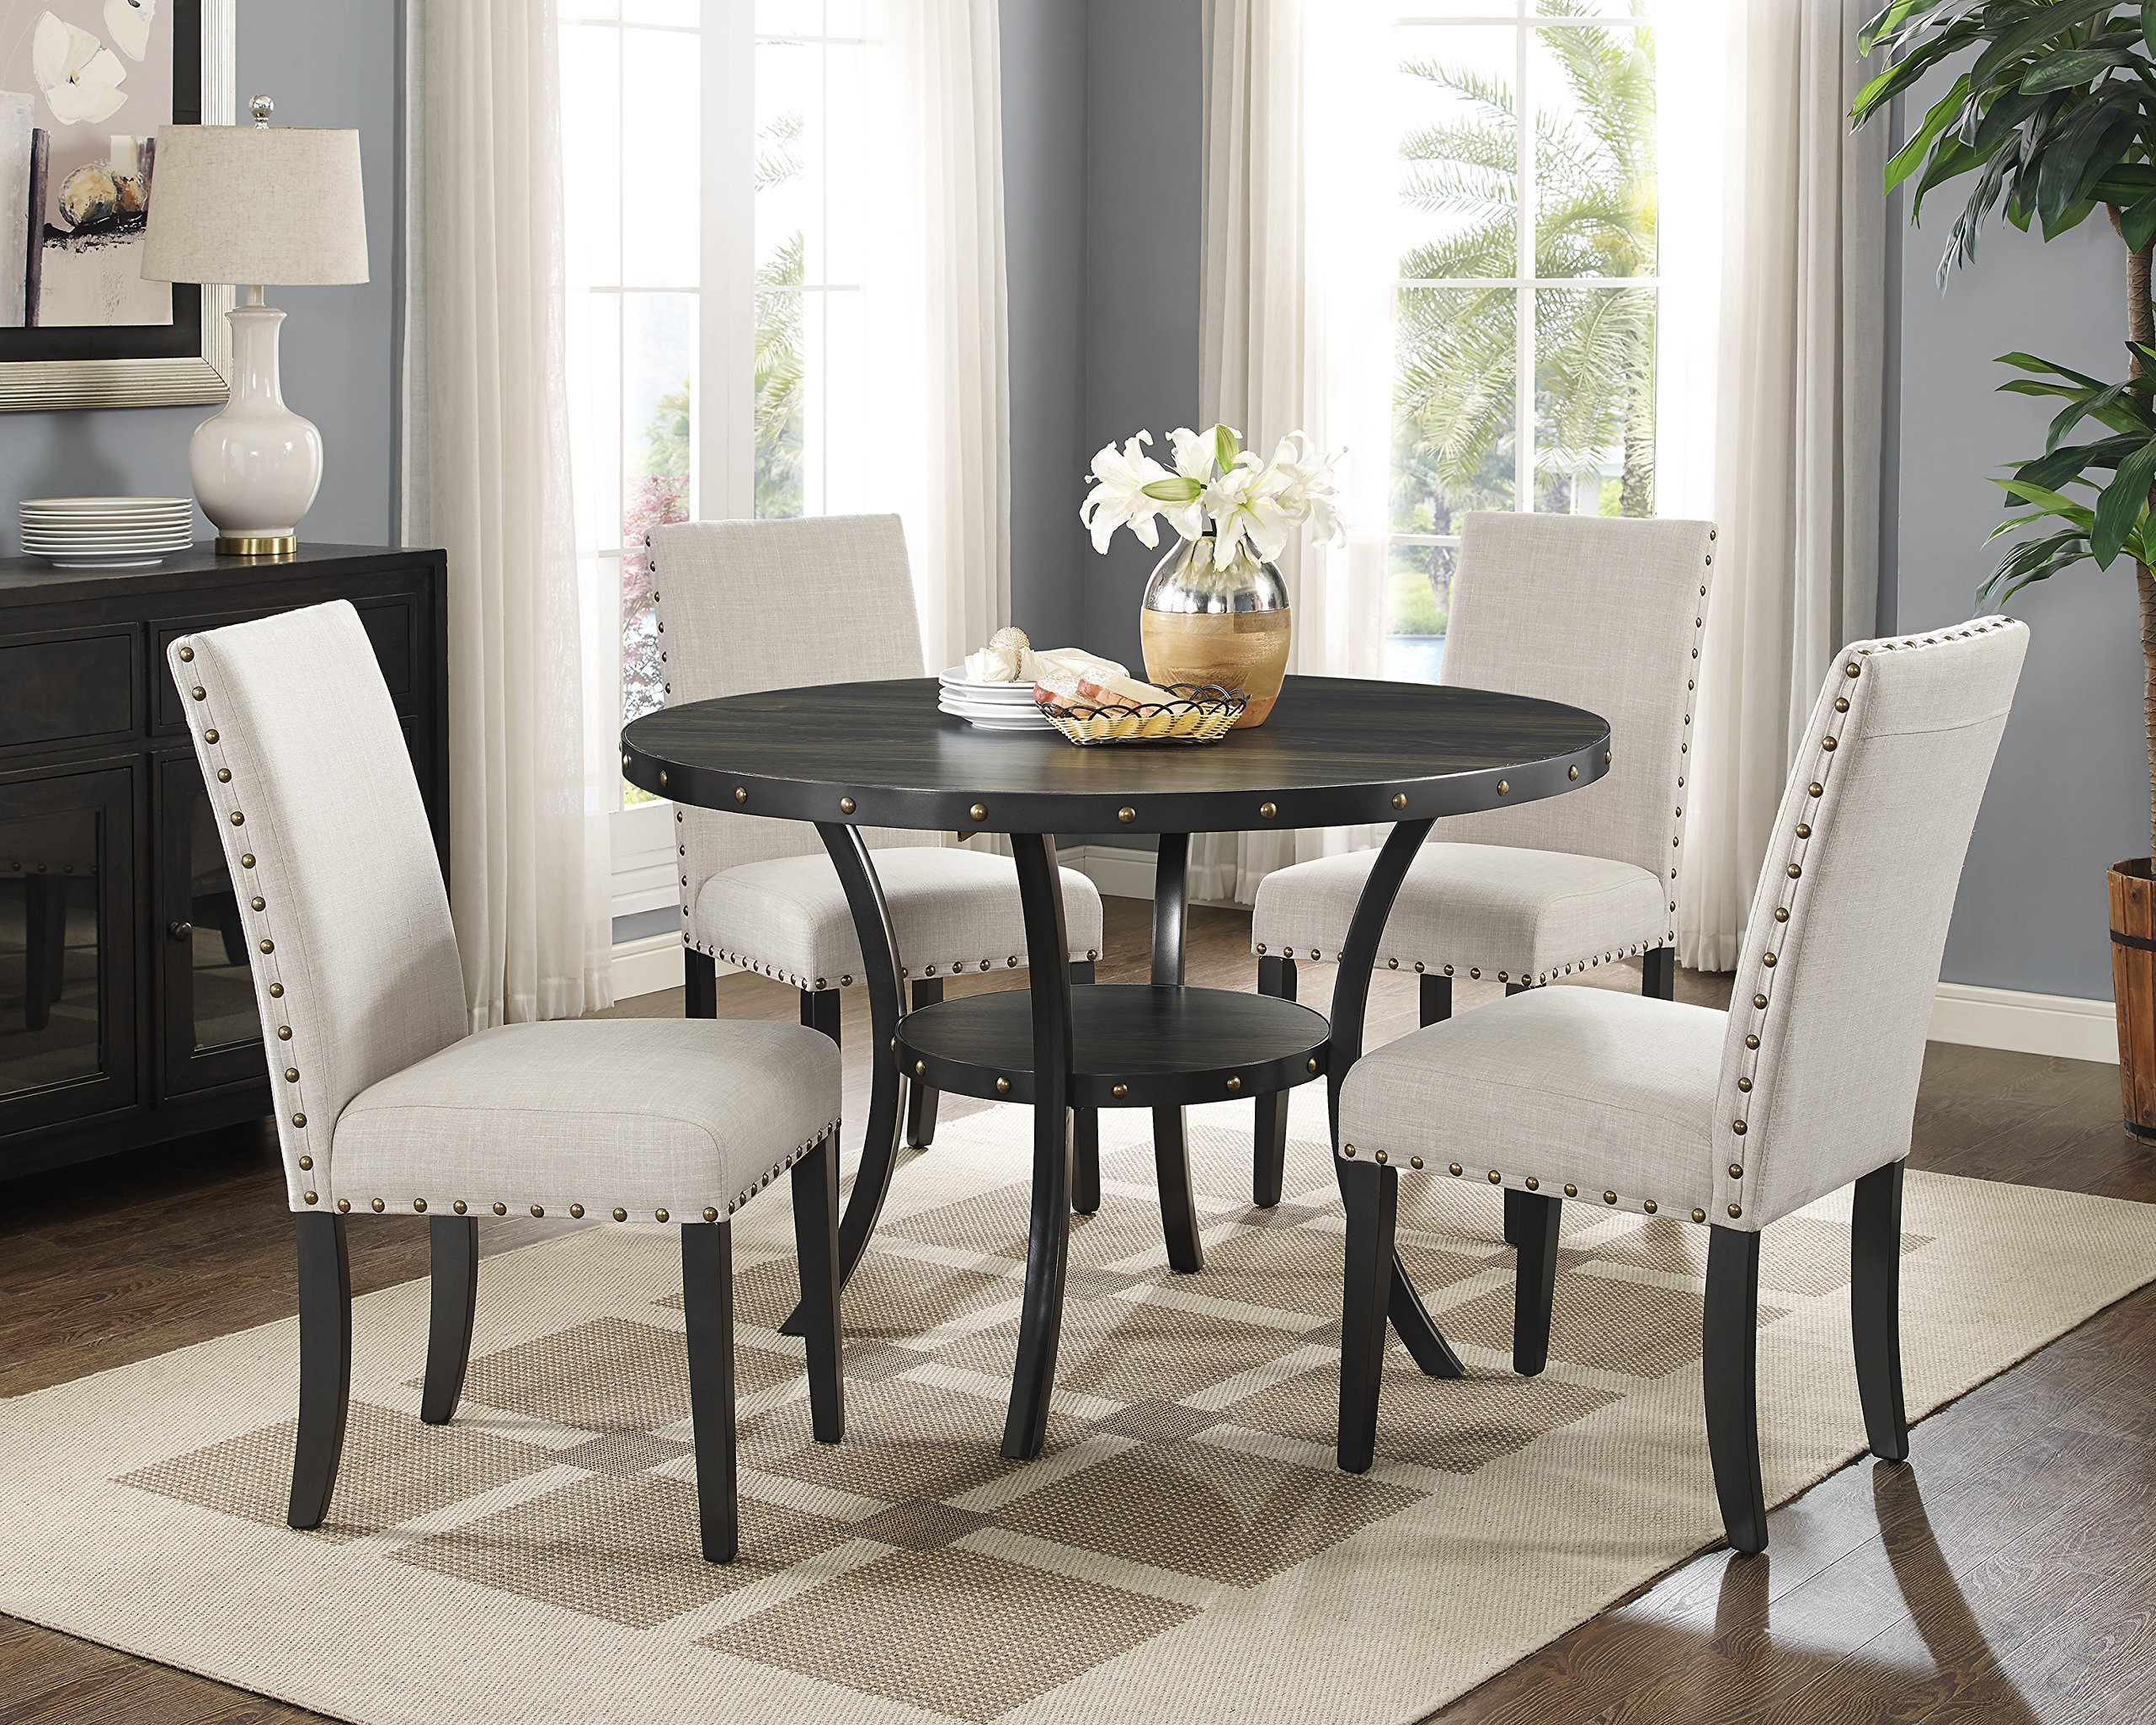 Phenomenal Buy Roundhill Furniture Biony Tan Fabric Dining Chairs With Bralicious Painted Fabric Chair Ideas Braliciousco